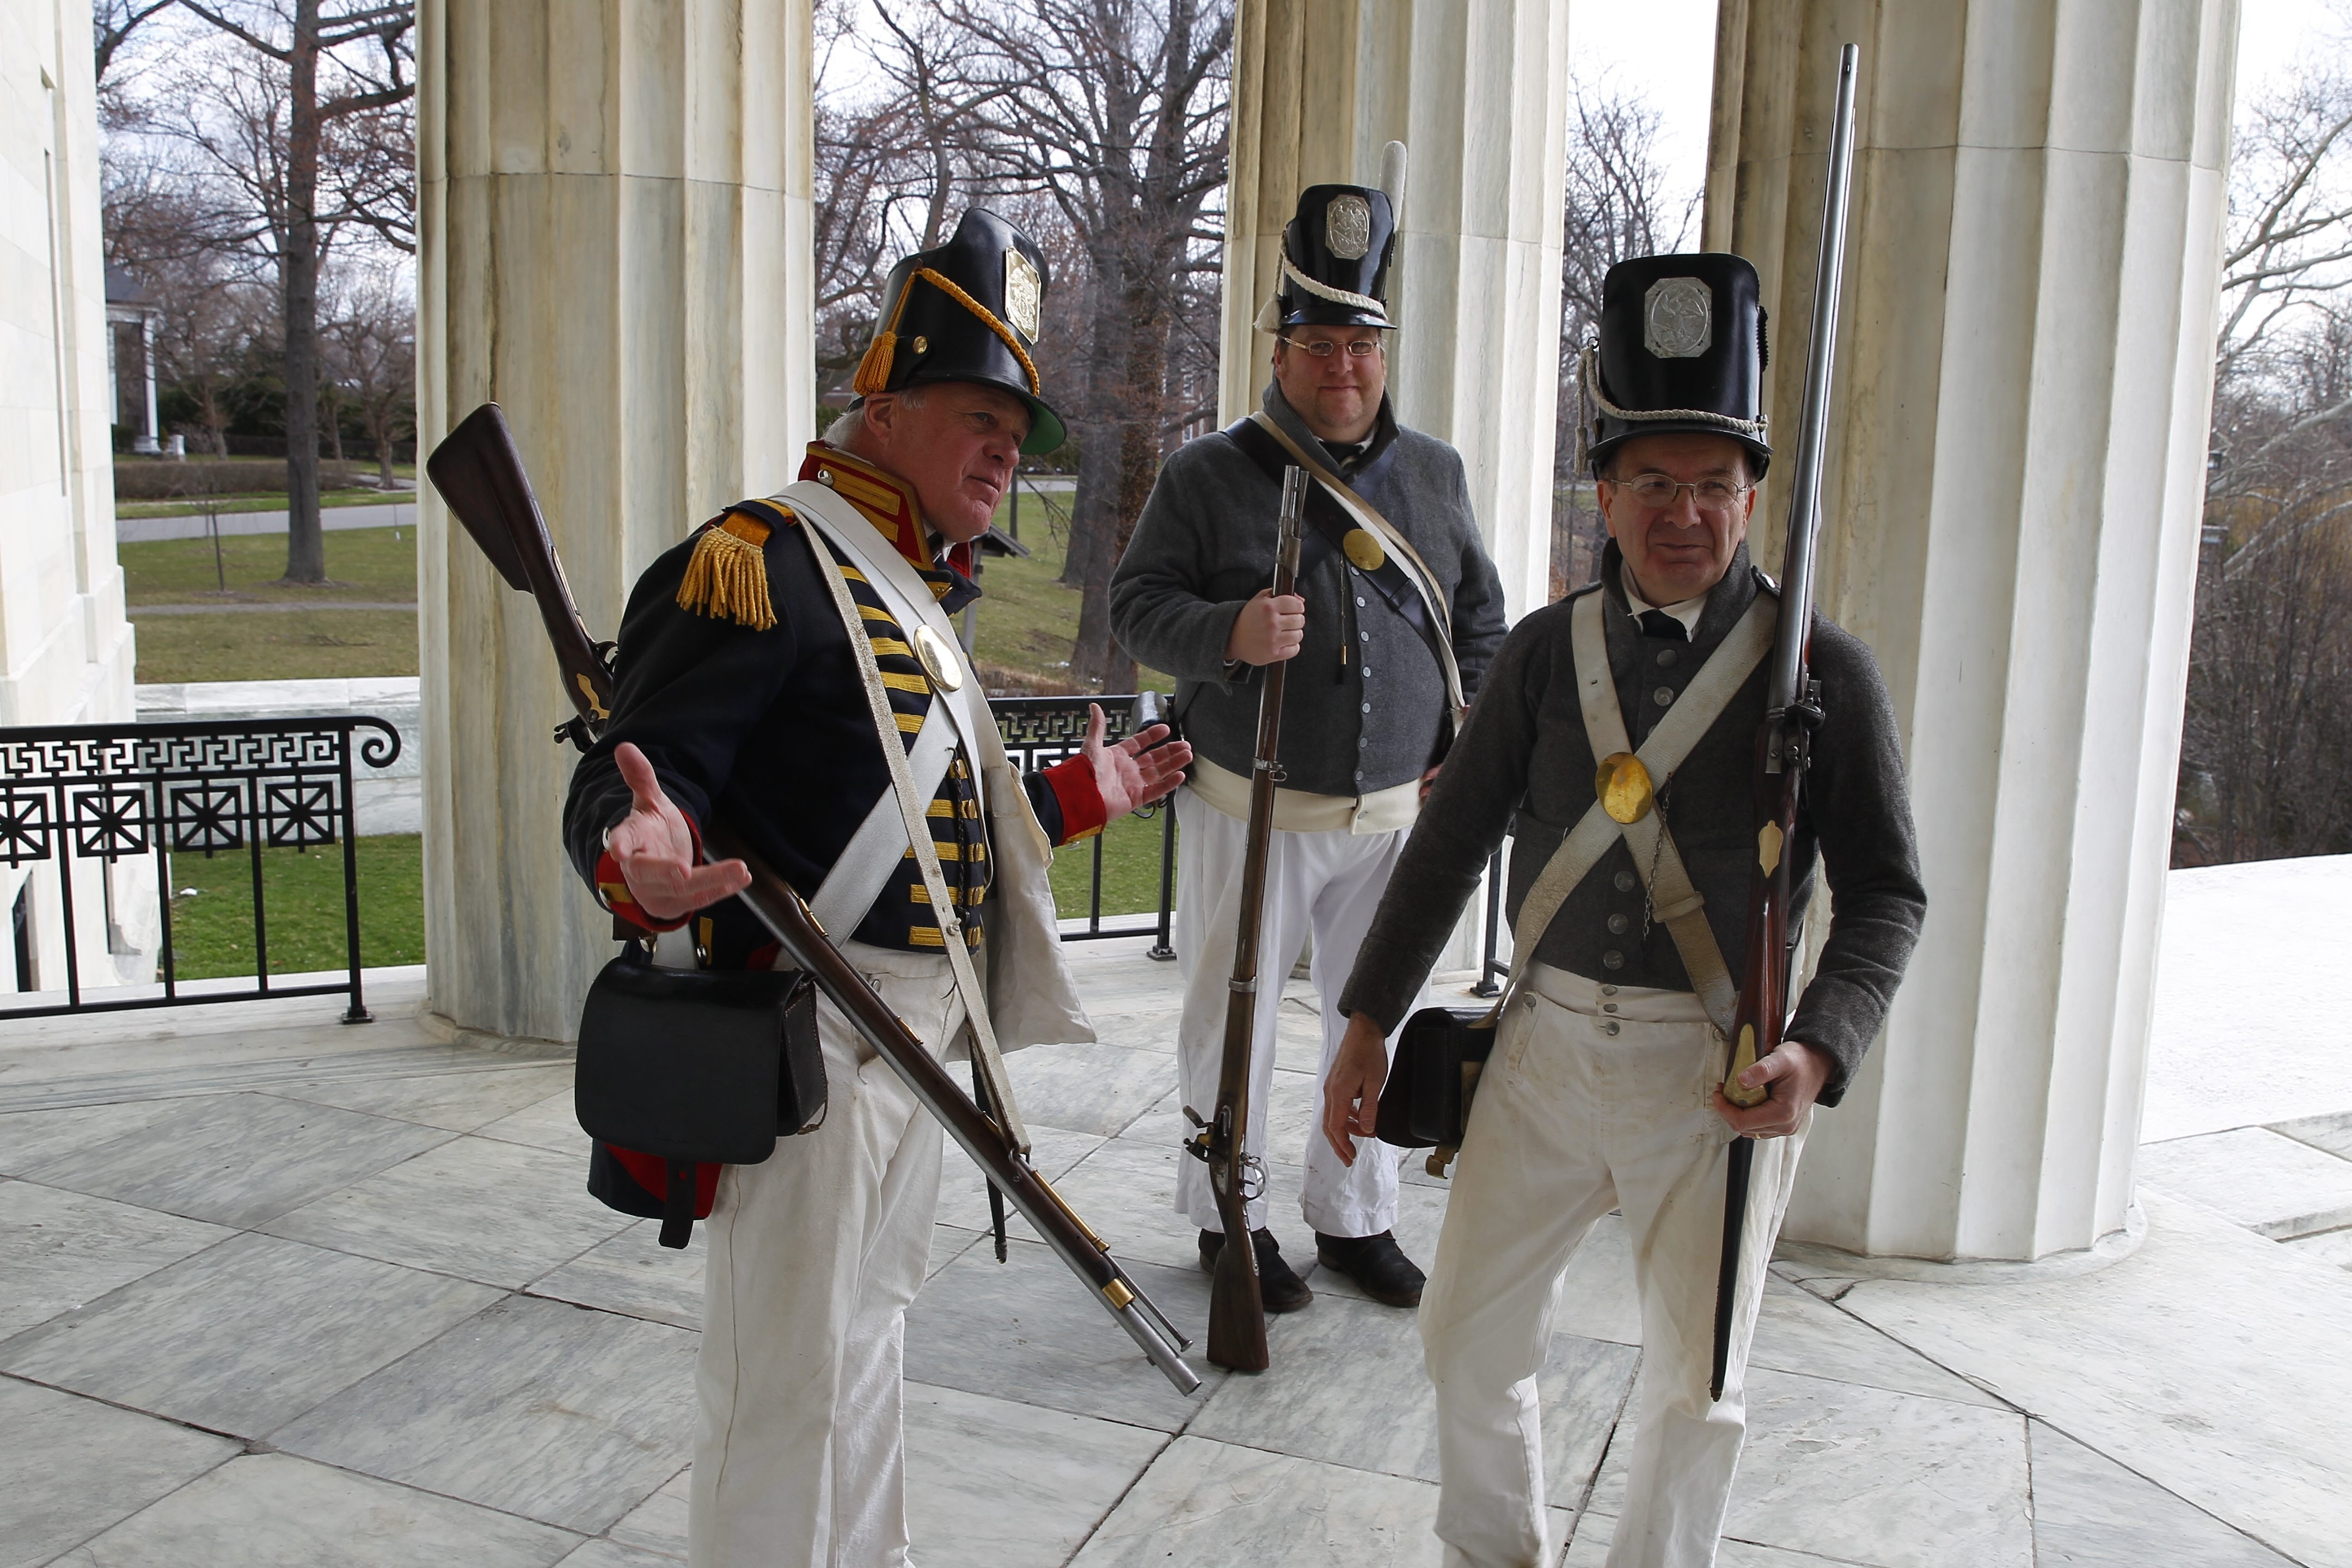 From left, War of 1812 re-enactors Alan Eimiller, Scoot Frank and Guy Rizzutto, all in period clothing, were  on hand Wednesday for the announcement launching the third year of War of 1812 bicentennial events.